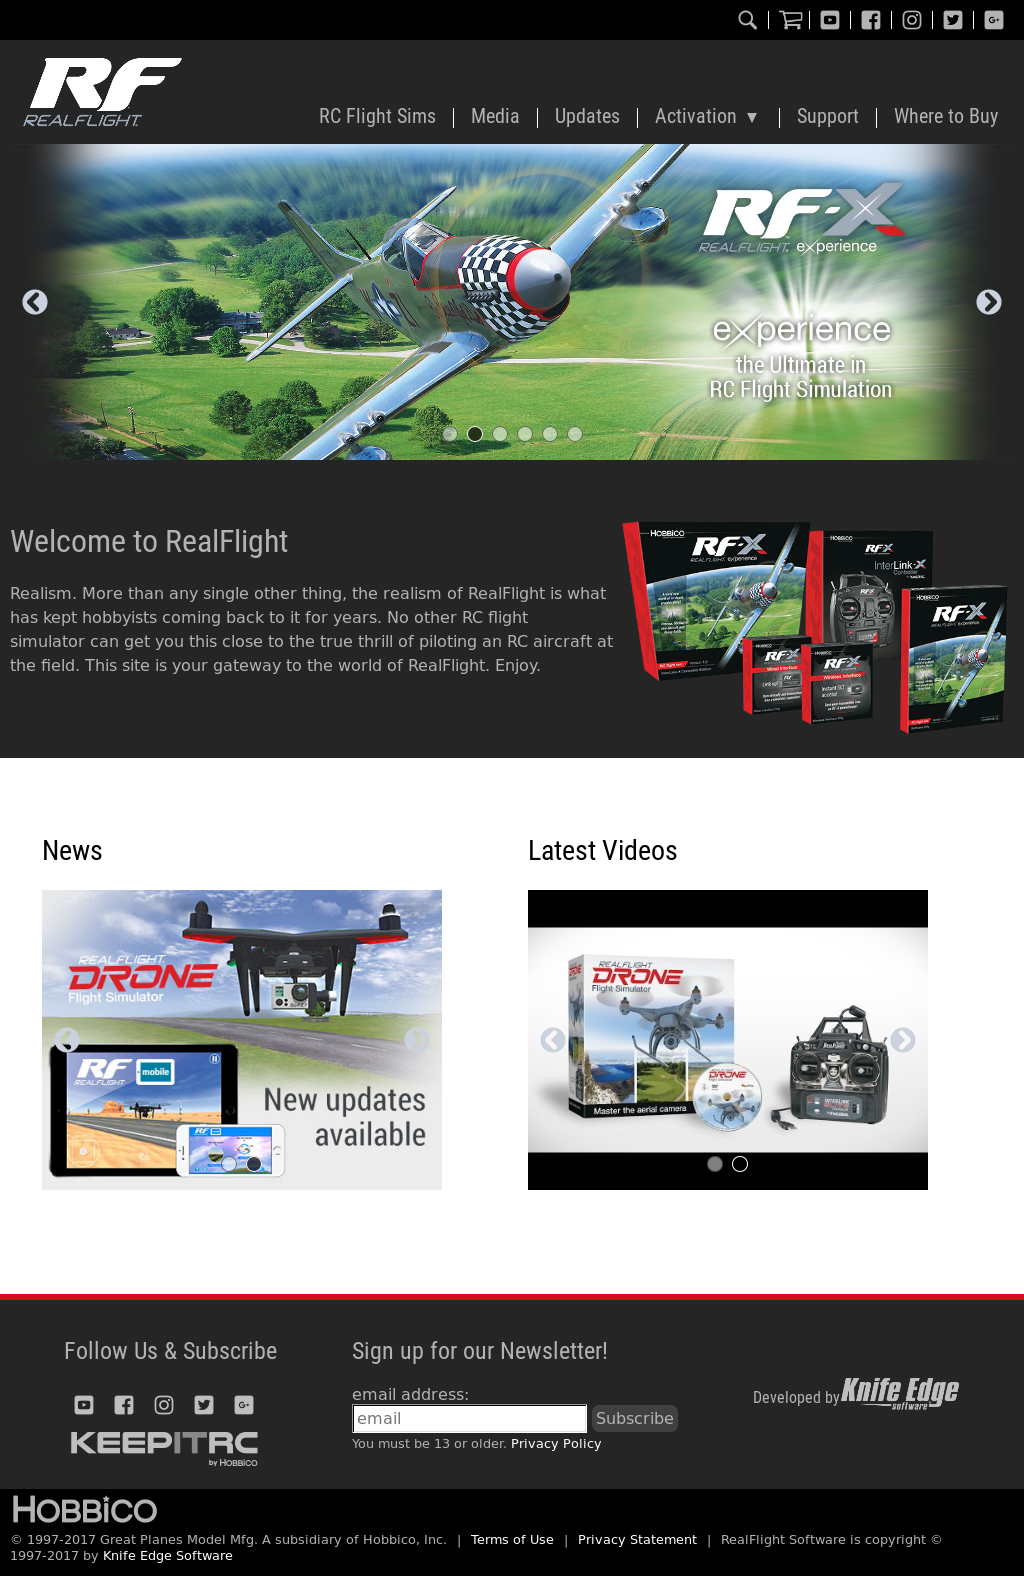 Realflight R/c Flight Simulator Competitors, Revenue and Employees